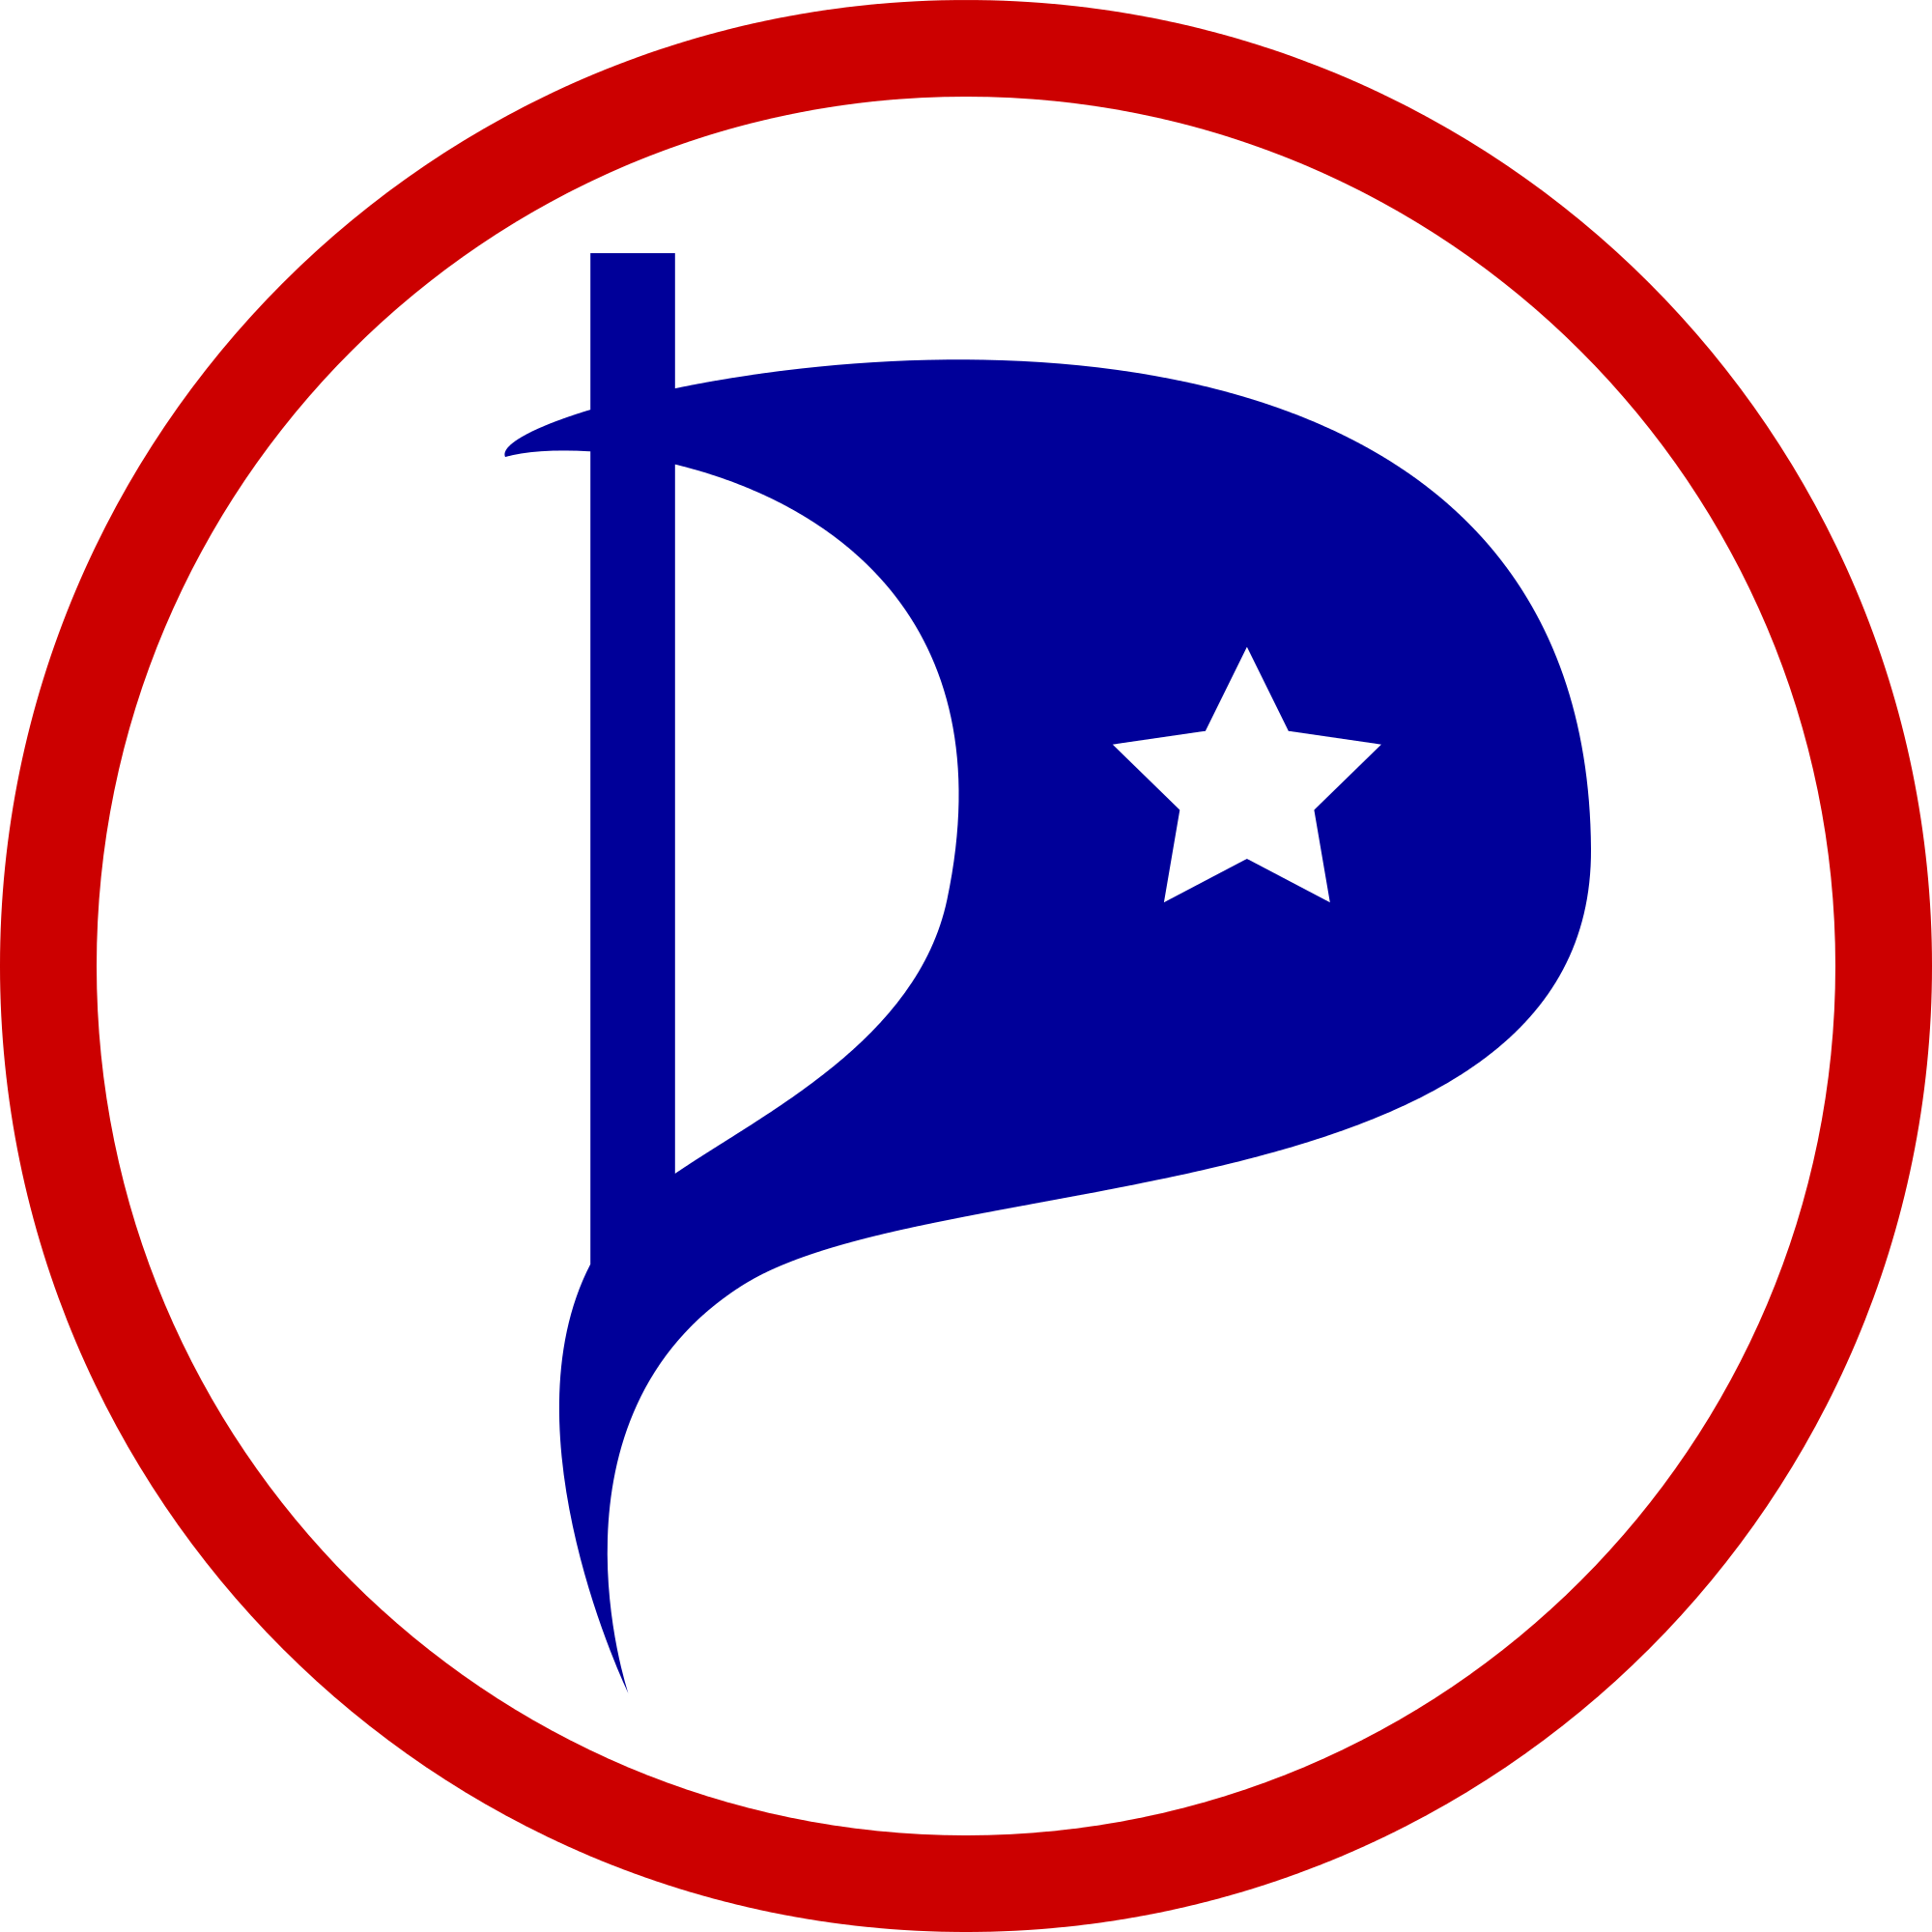 United States Pirate Party - Wikipedia, the free encyclopedia